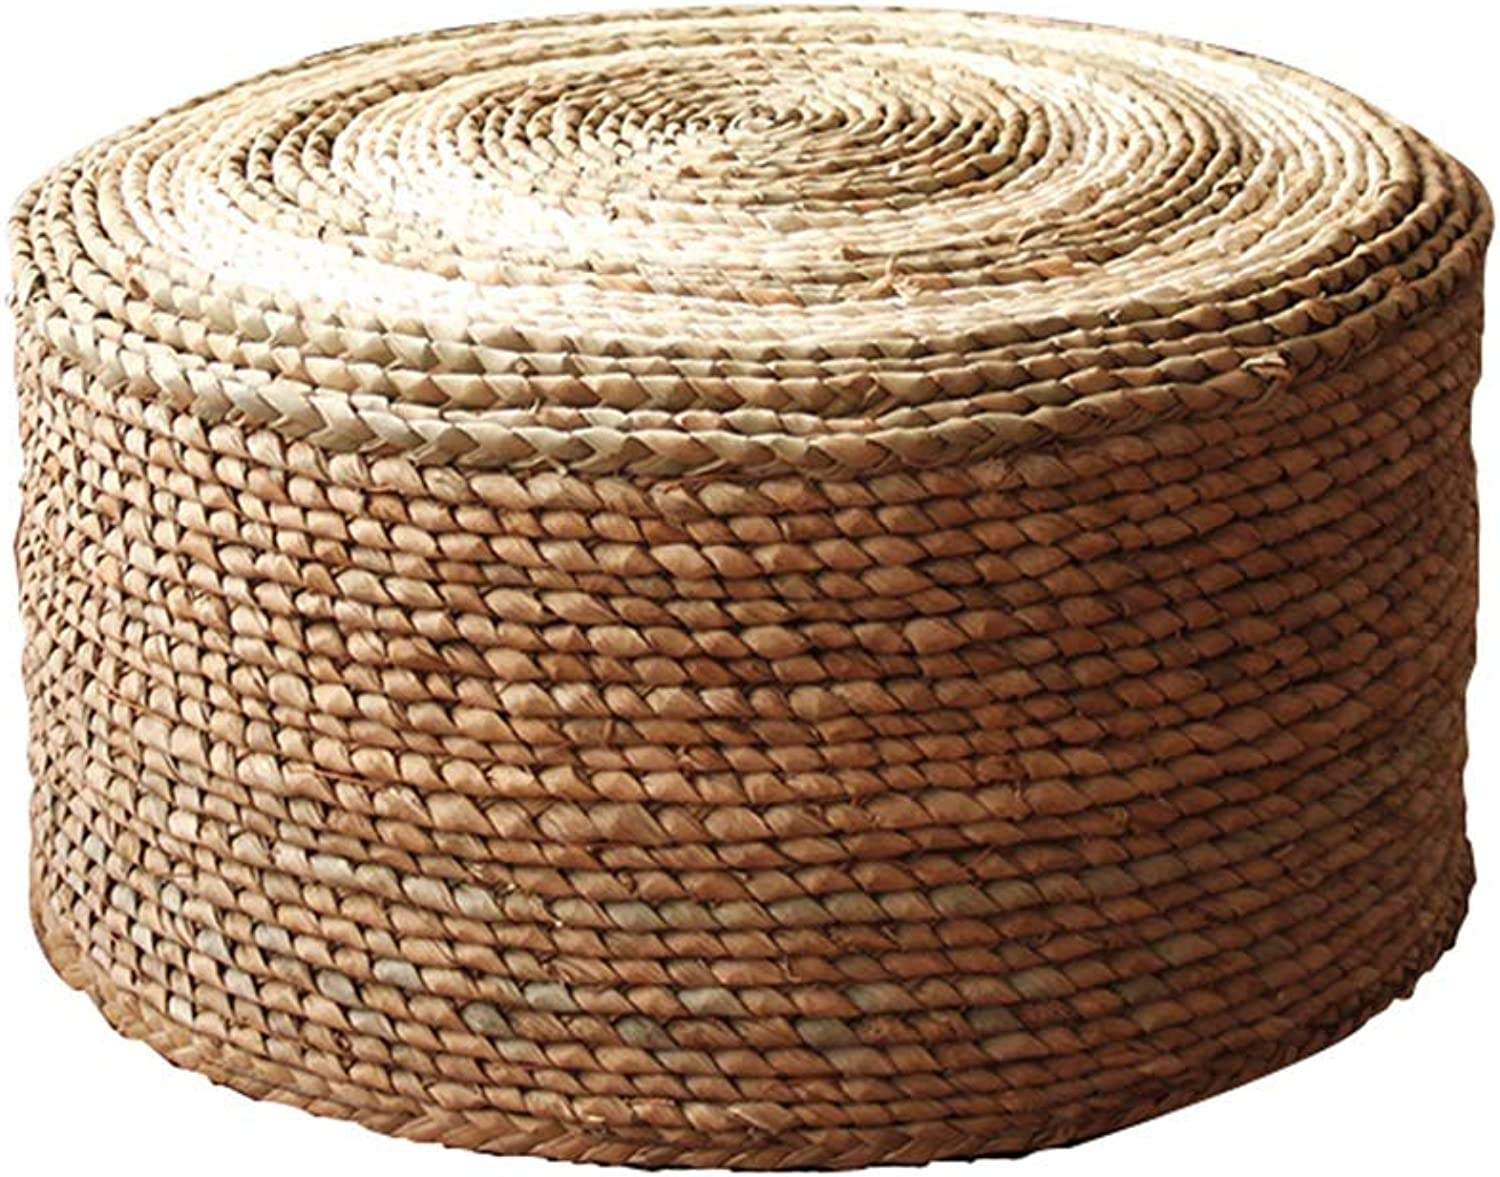 AGLZWY Rattan Stool Sofa Stool Multipurpose Breathable Soft Balcony Living Room Change shoes Bench Make Up Round Coffee Table, Multiple colors (color   A, Size   40X25CM)